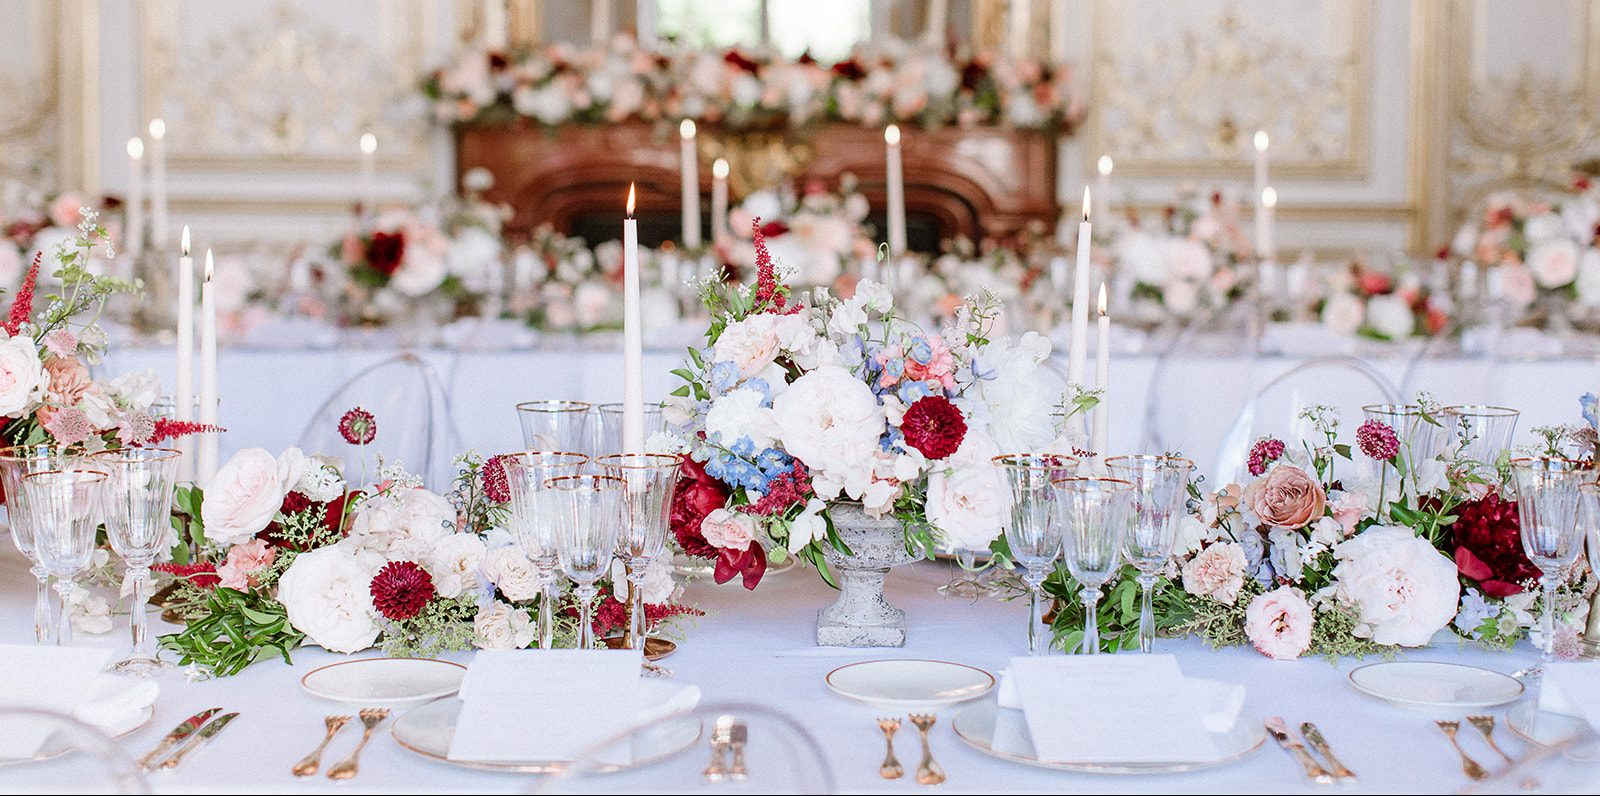 France-destination-wedding-planner-04